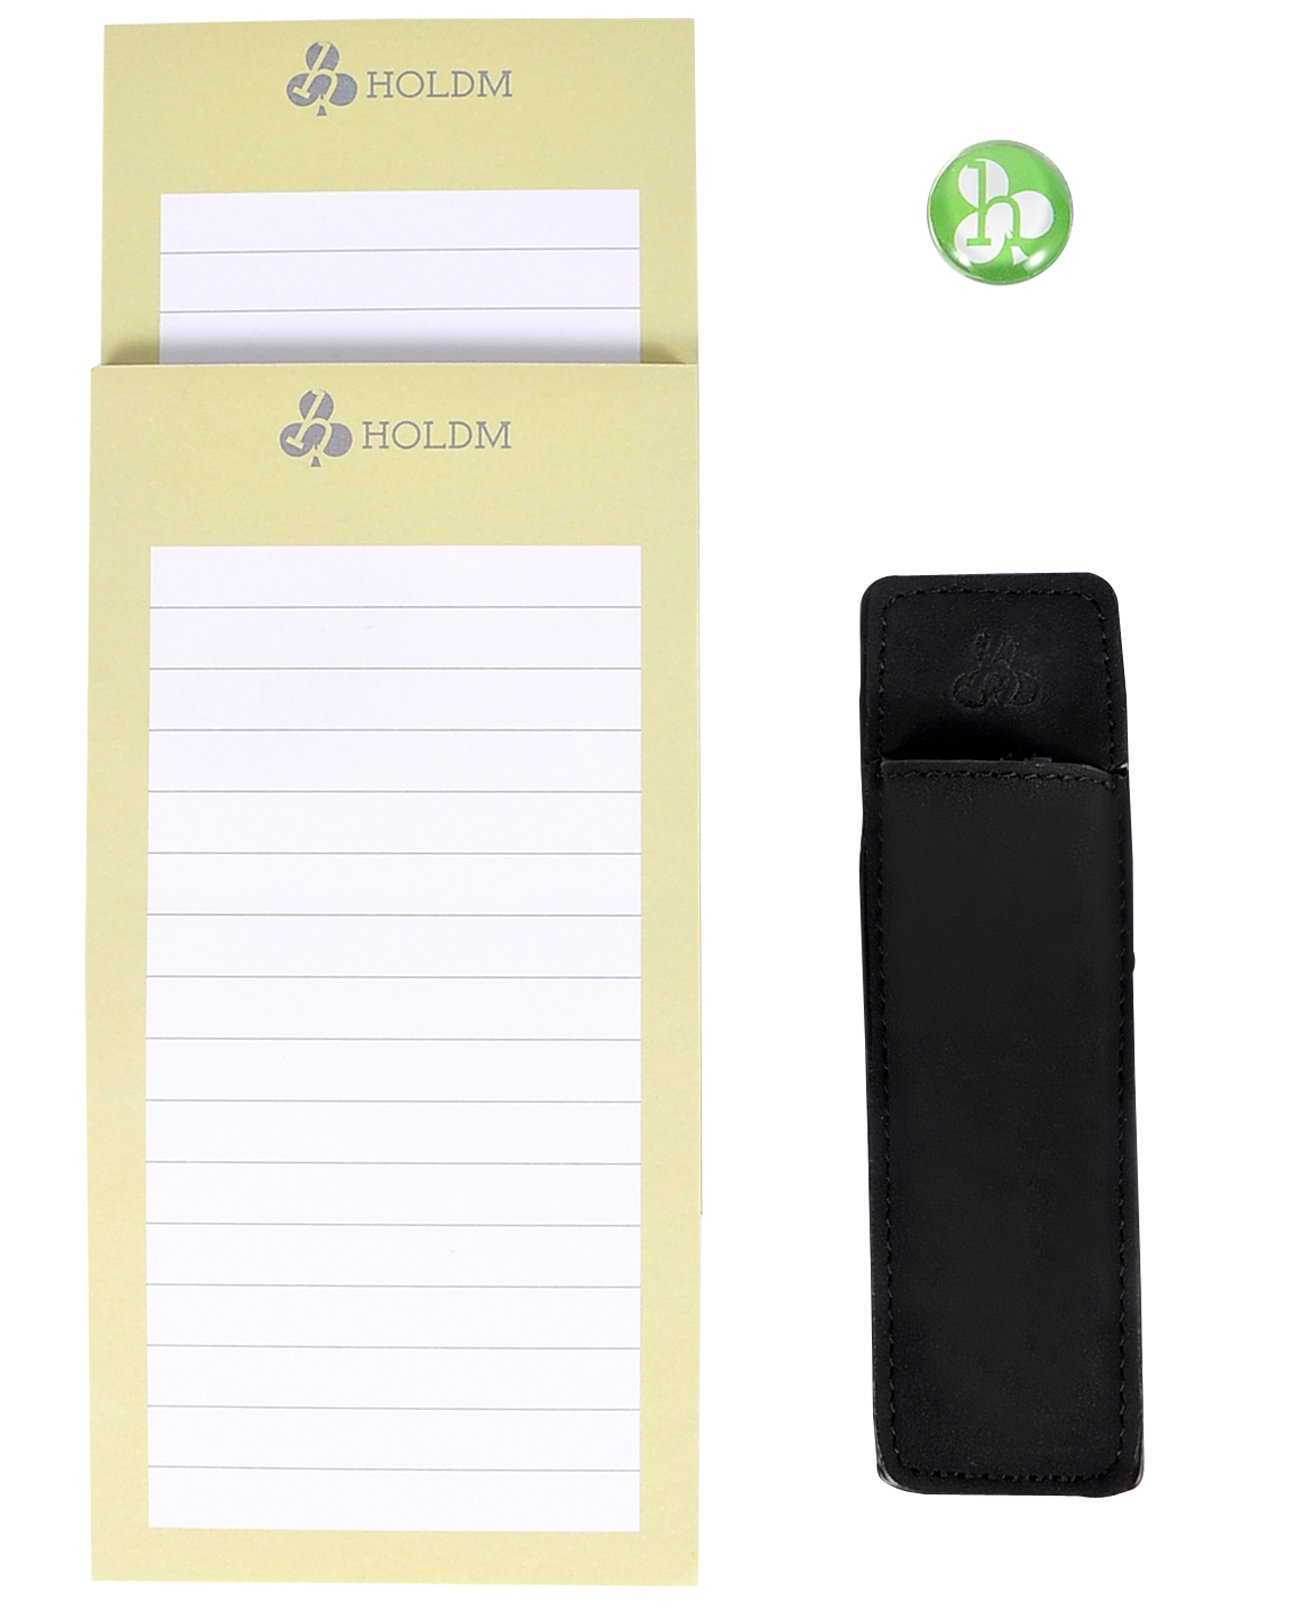 HOLDM Strong Refrigerator Magnetic Memo Notepads for To Do List, with Bonus Leather Pen Holder and Fridge Magnet (2 pads+1 pen holder +1 magnet)